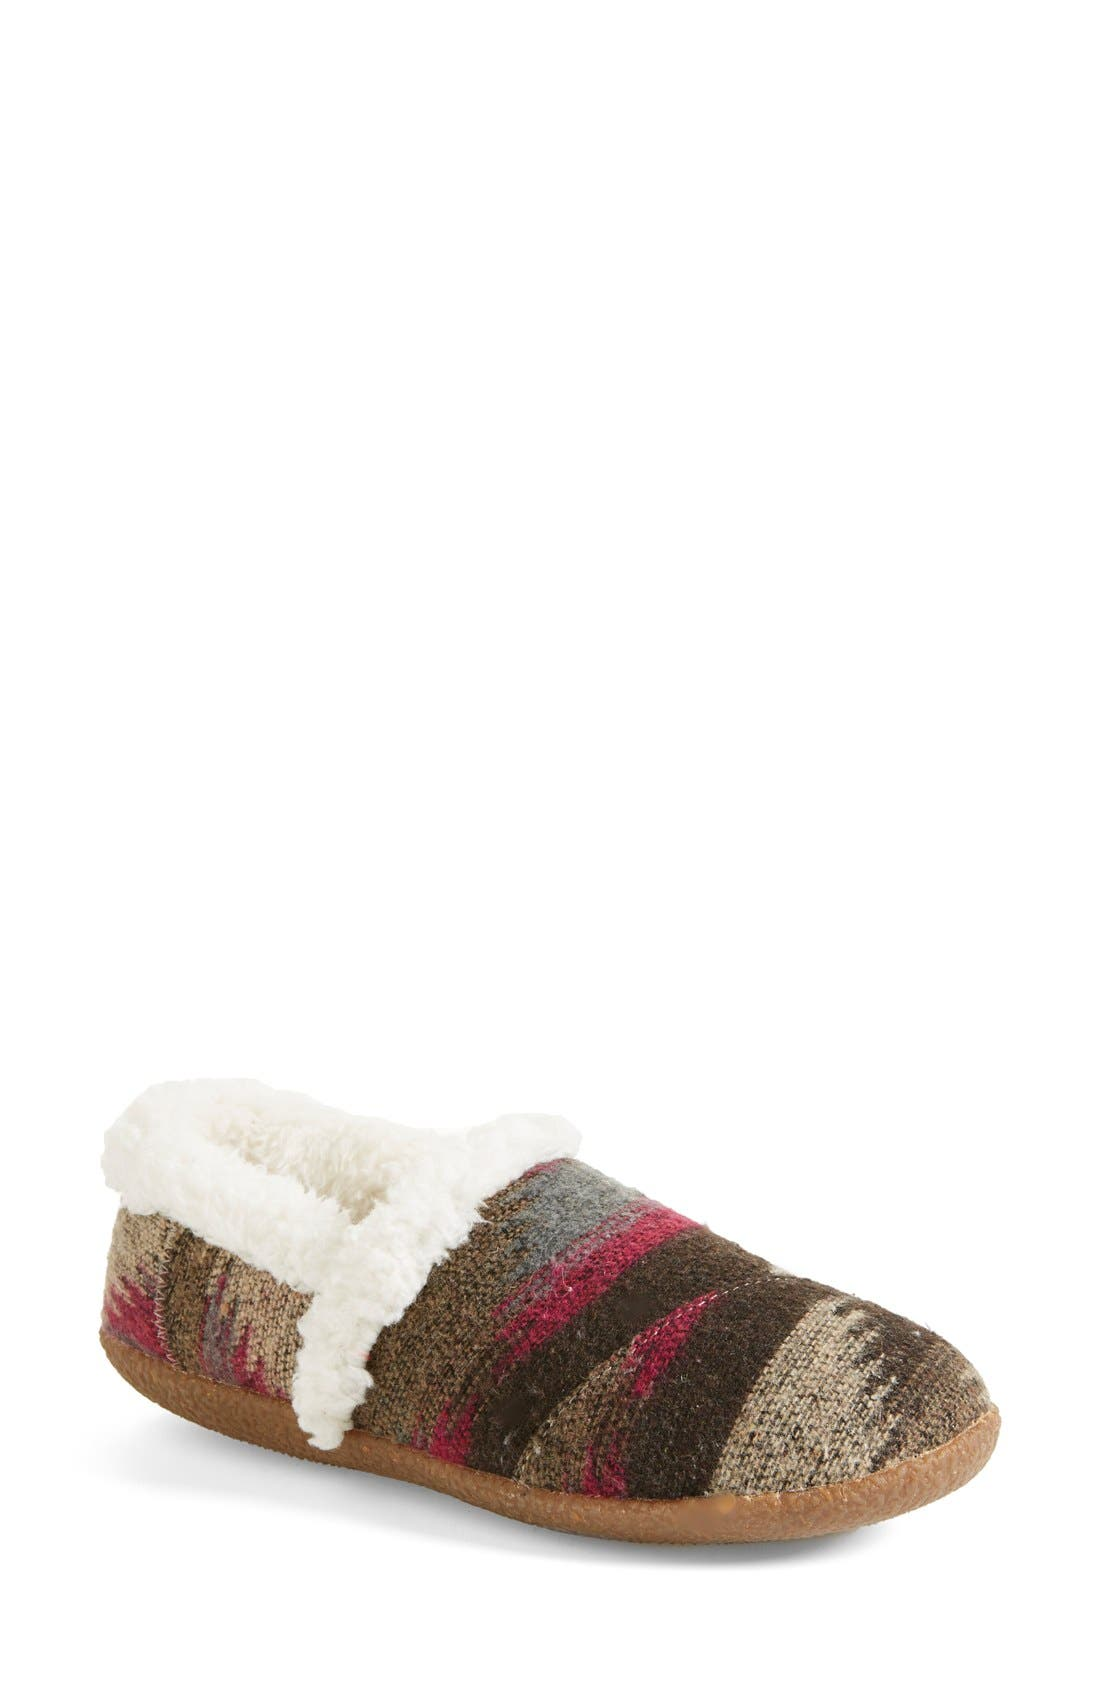 'Classic - Wool' Slippers,                         Main,                         color, Grey